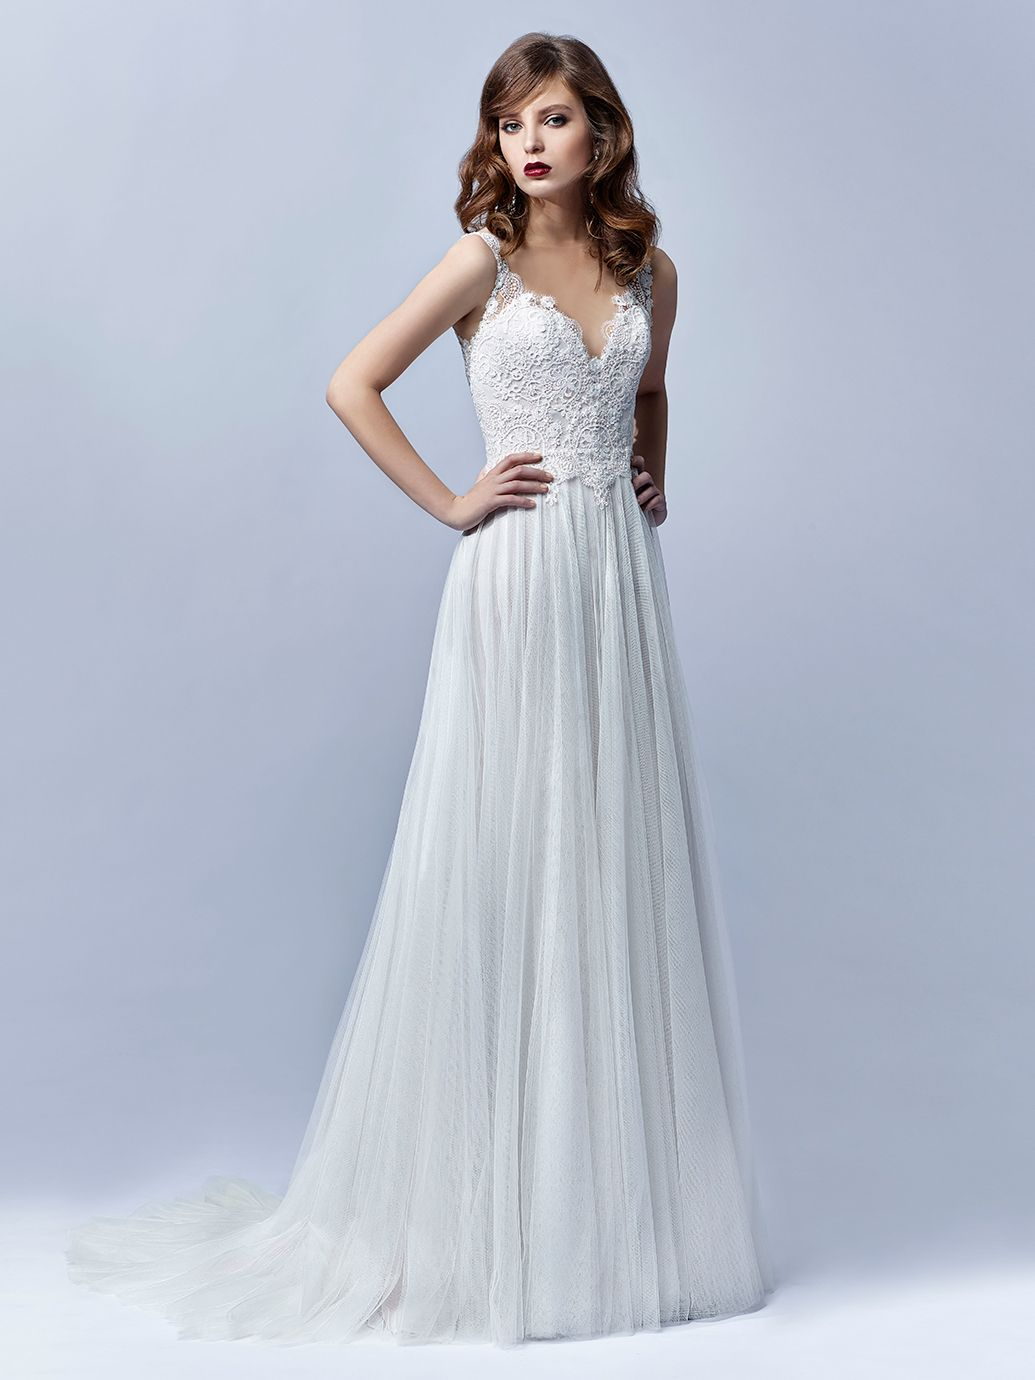 Embroidered lace and tulle wedding dress by enzoani love the deep embroidered lace and tulle wedding dress by enzoani love the deep sweetheart neckline on this ombrellifo Choice Image